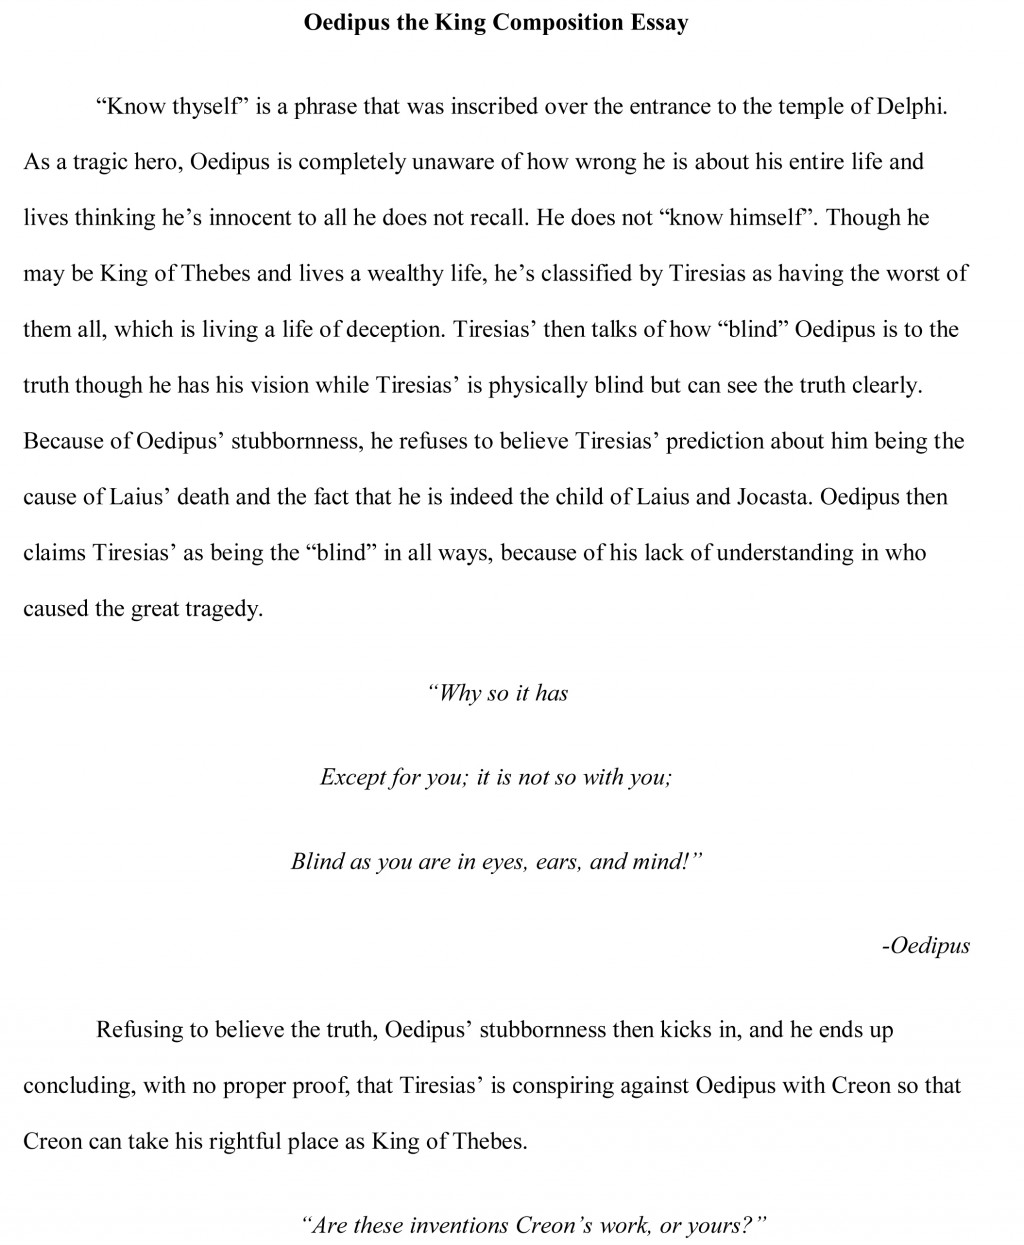 005 Oedipus Essay Free Sample Topics For An Unbelievable Interesting Expository Large